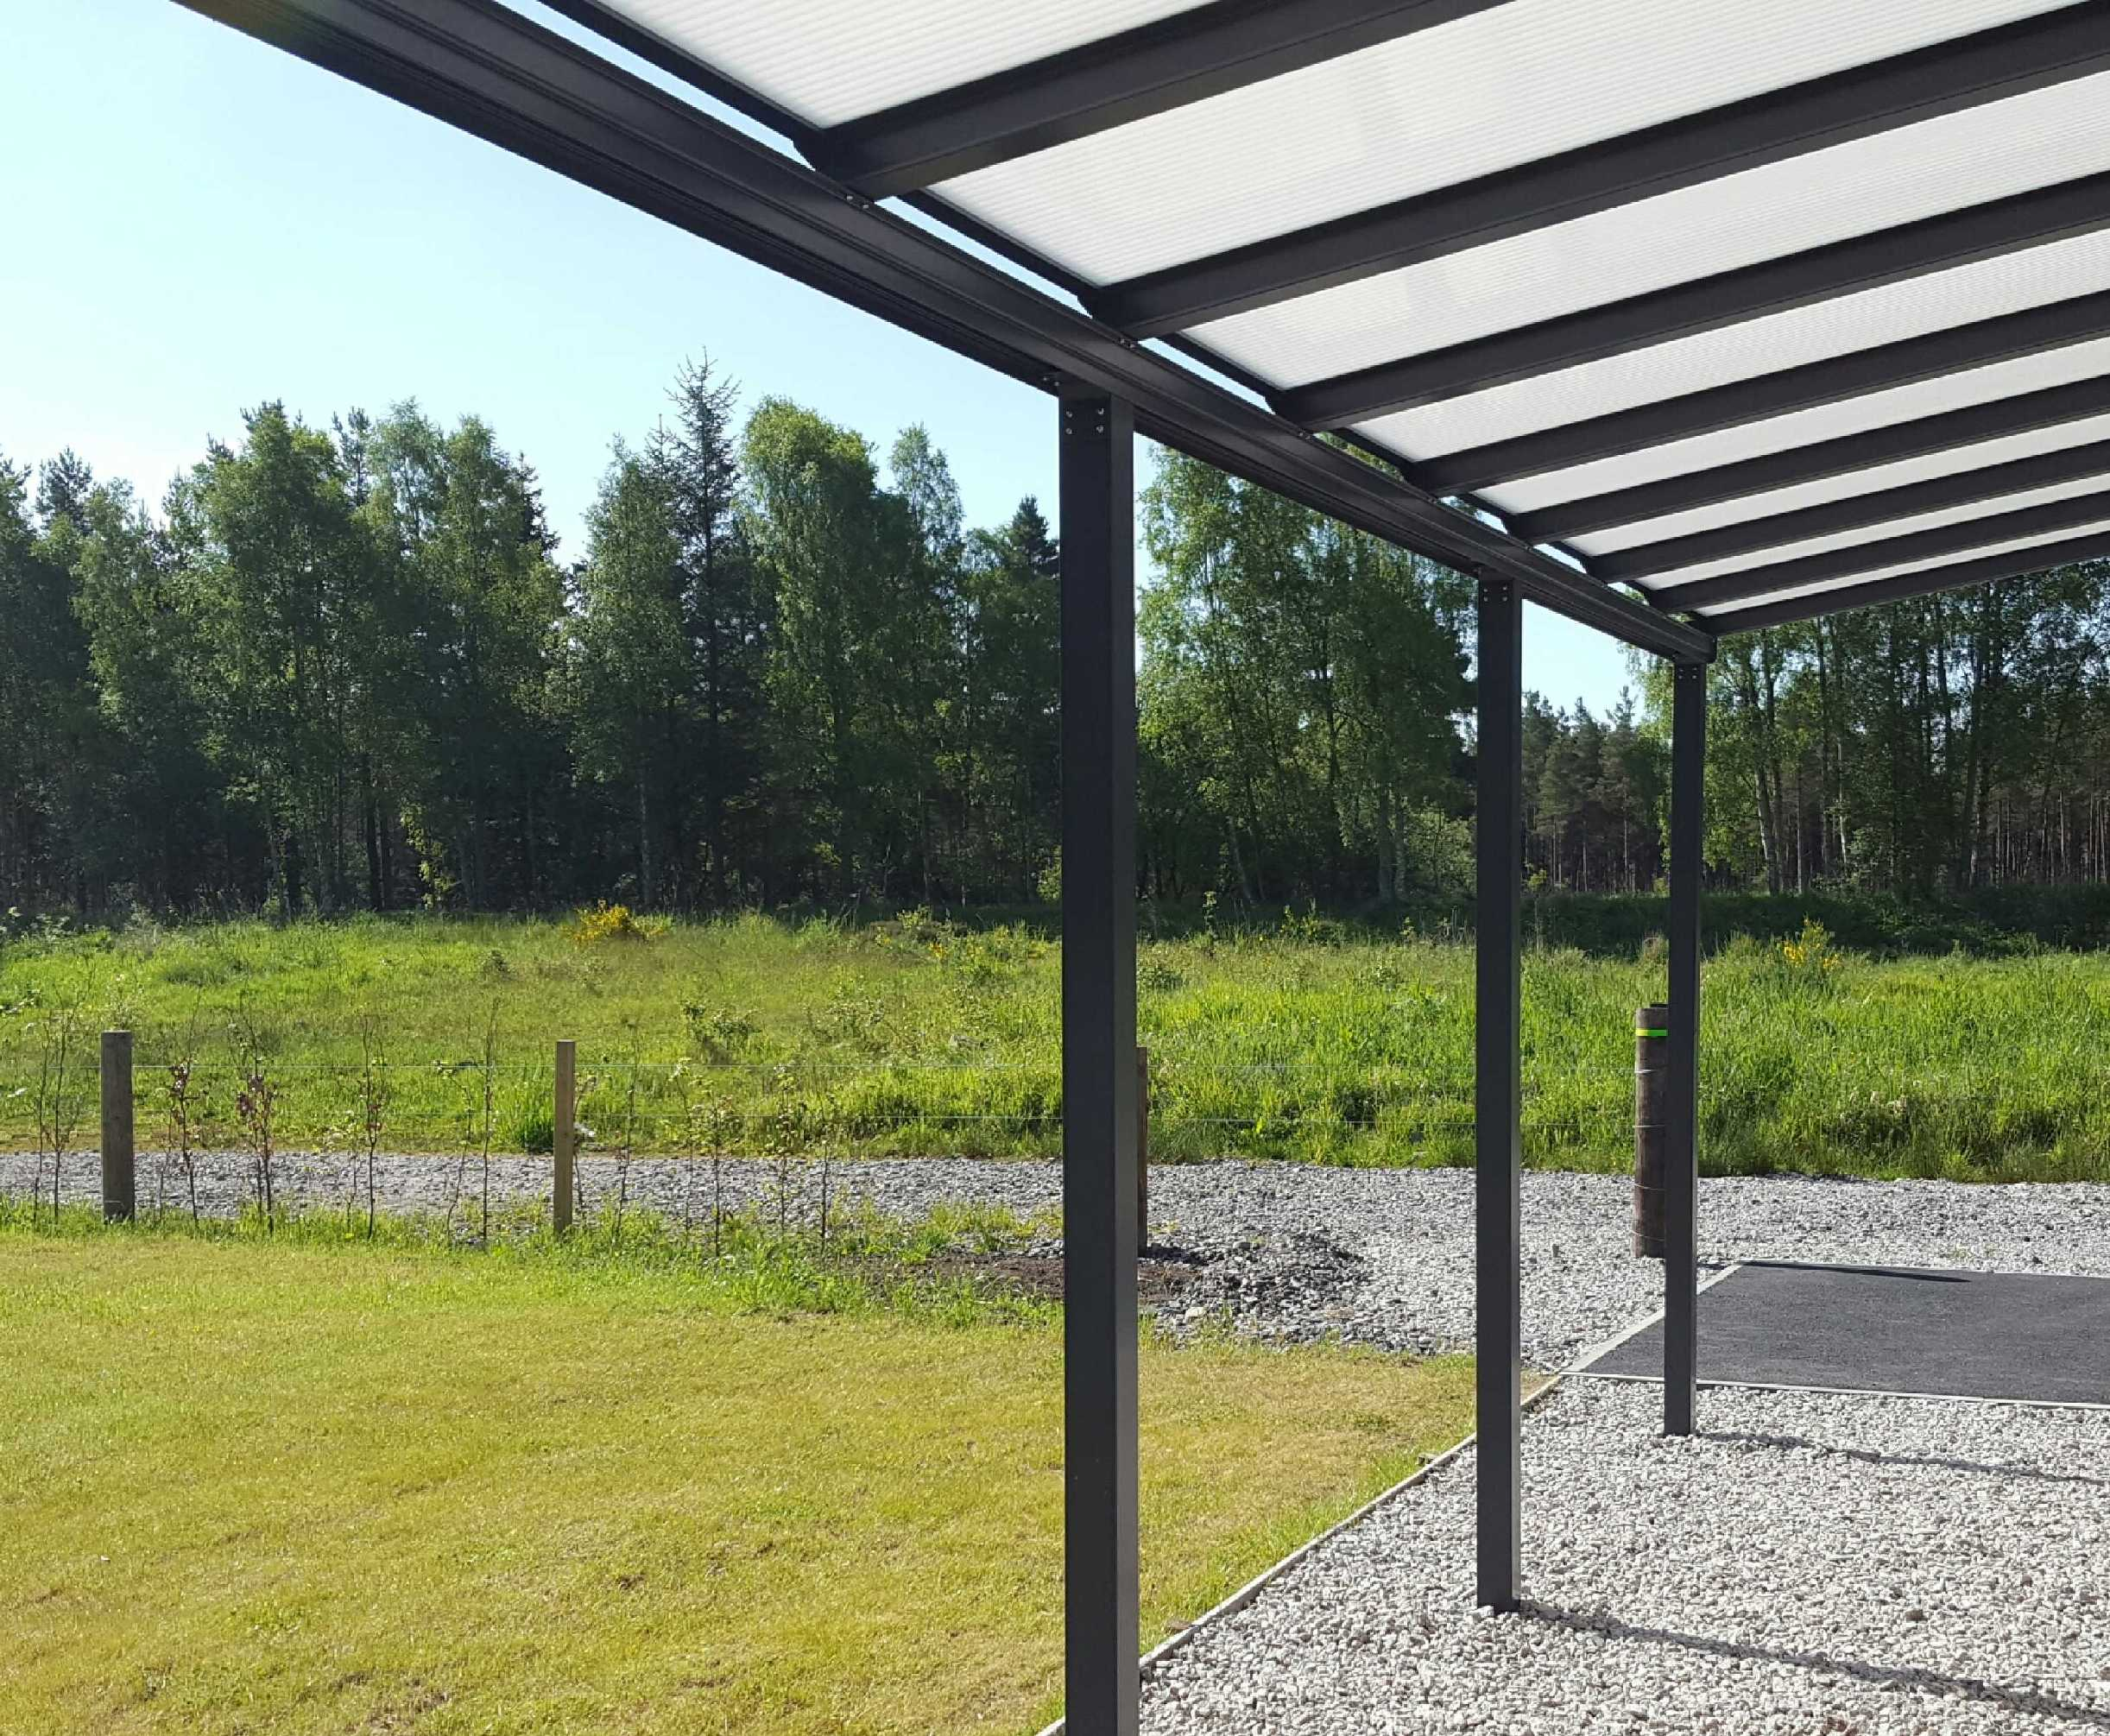 Omega Smart Lean-To Canopy, Anthracite Grey, 16mm Polycarbonate Glazing - 7.8m (W) x 4.0m (P), (4) Supporting Posts